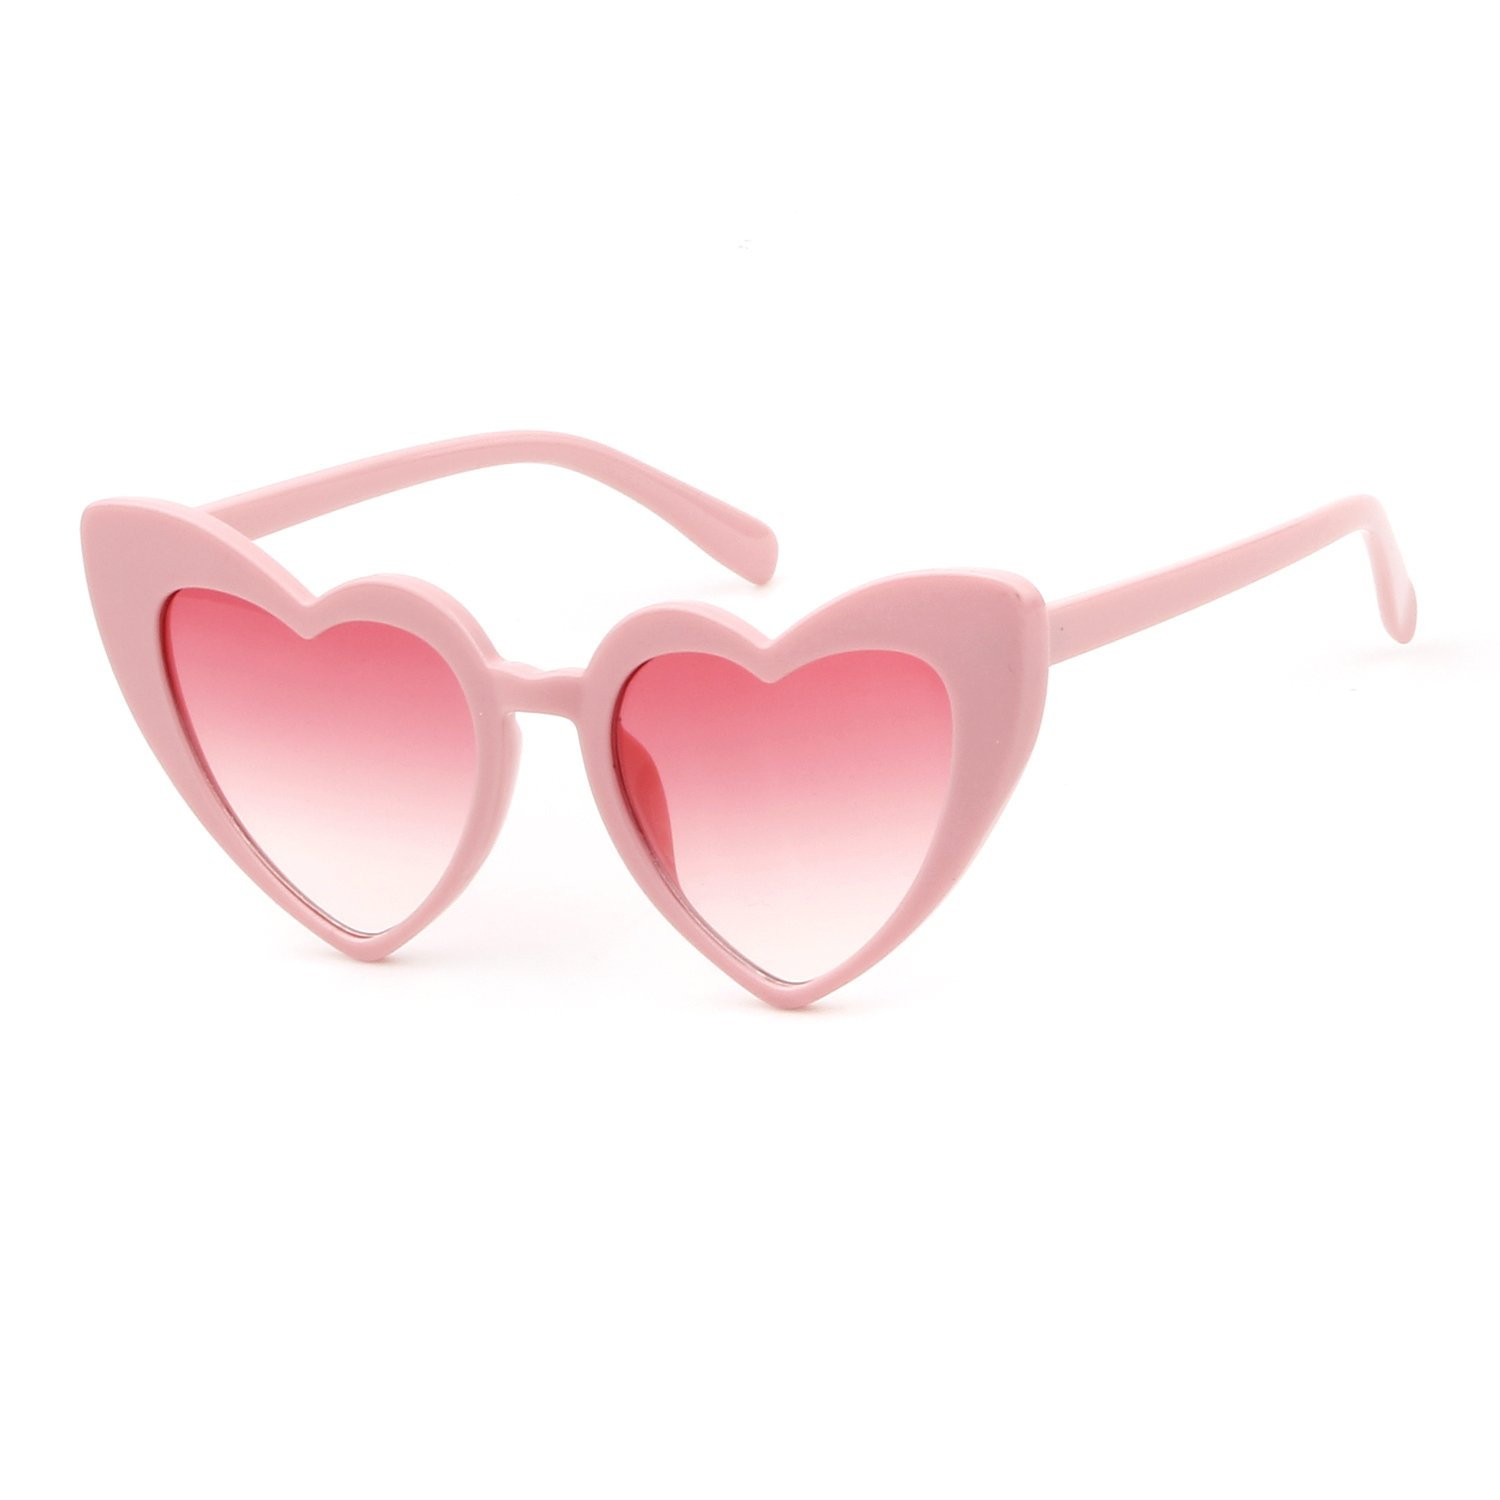 Clout Goggle Heart Sunglasses Vintage Cat Eye Mod Style Retro Kurt Cobain Glasses yiwu major glasses co. ltd